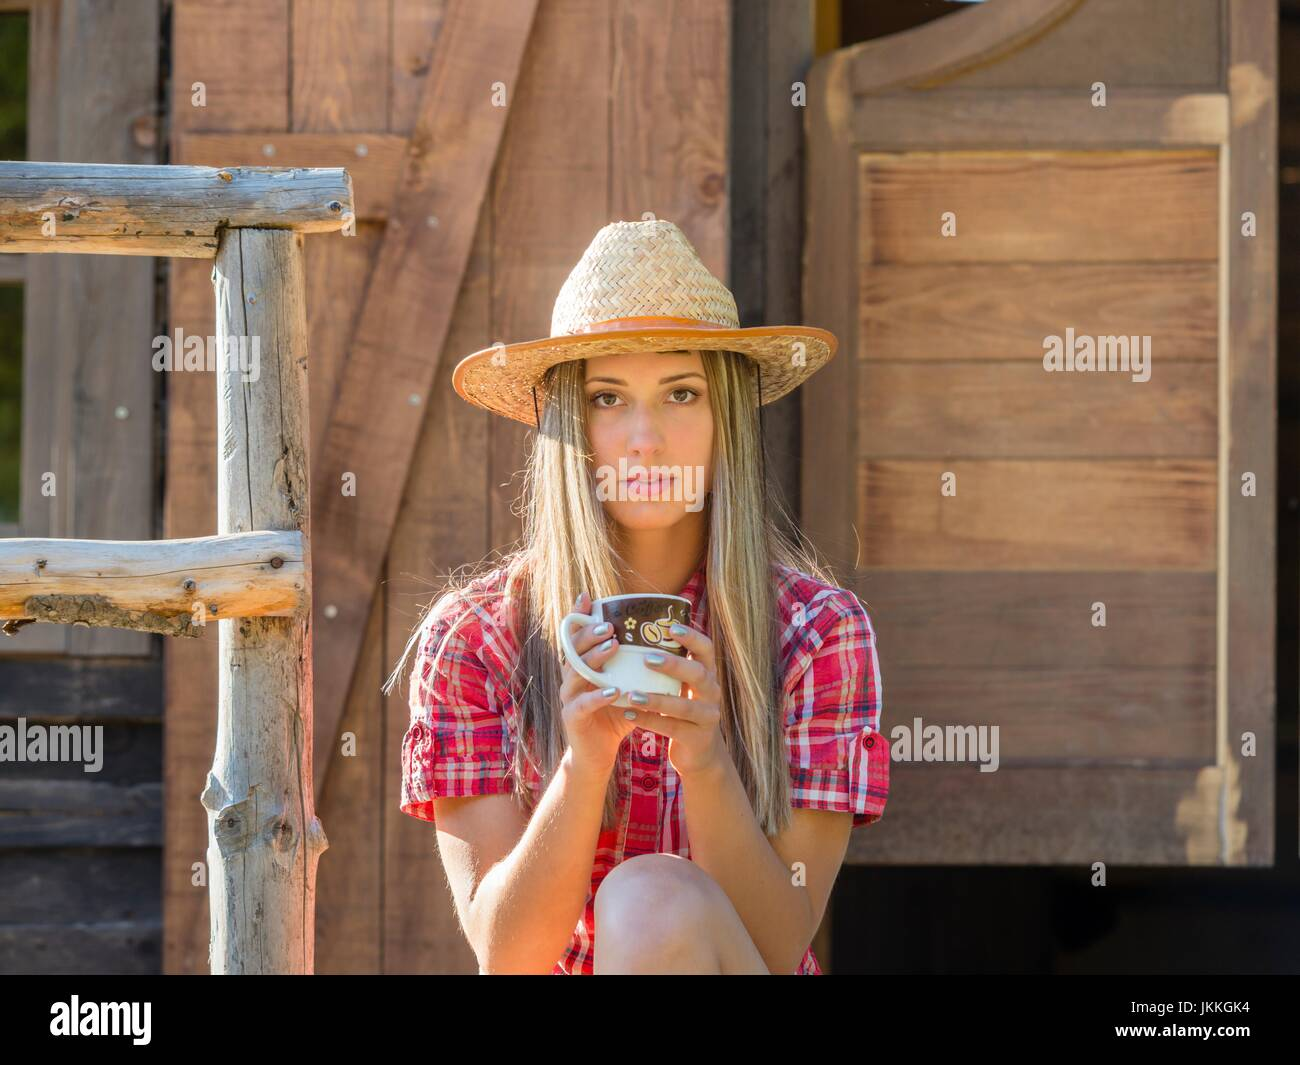 One country-girl with cup of coffee in hand facing camera serious looking at camera front frontal view - Stock Image